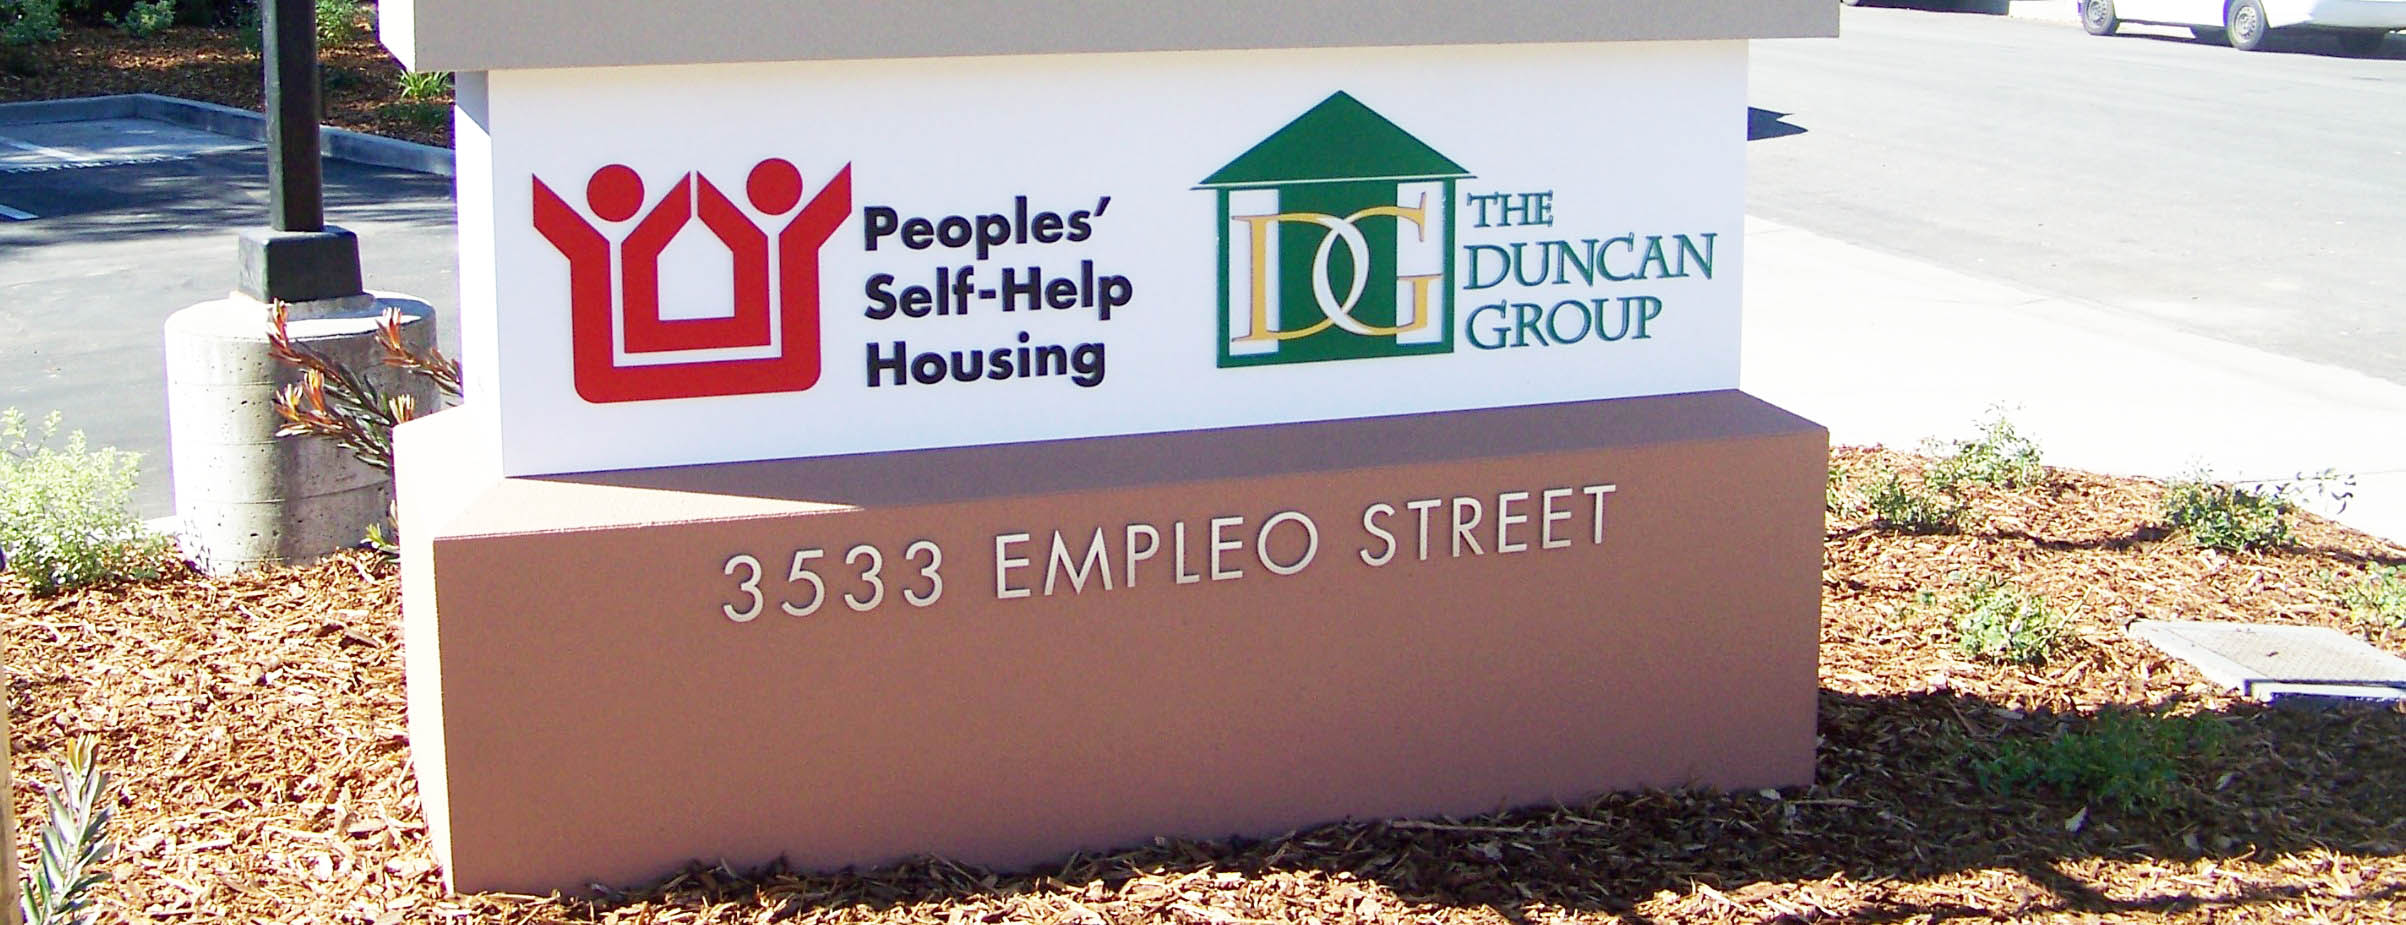 Duncan Group Sign